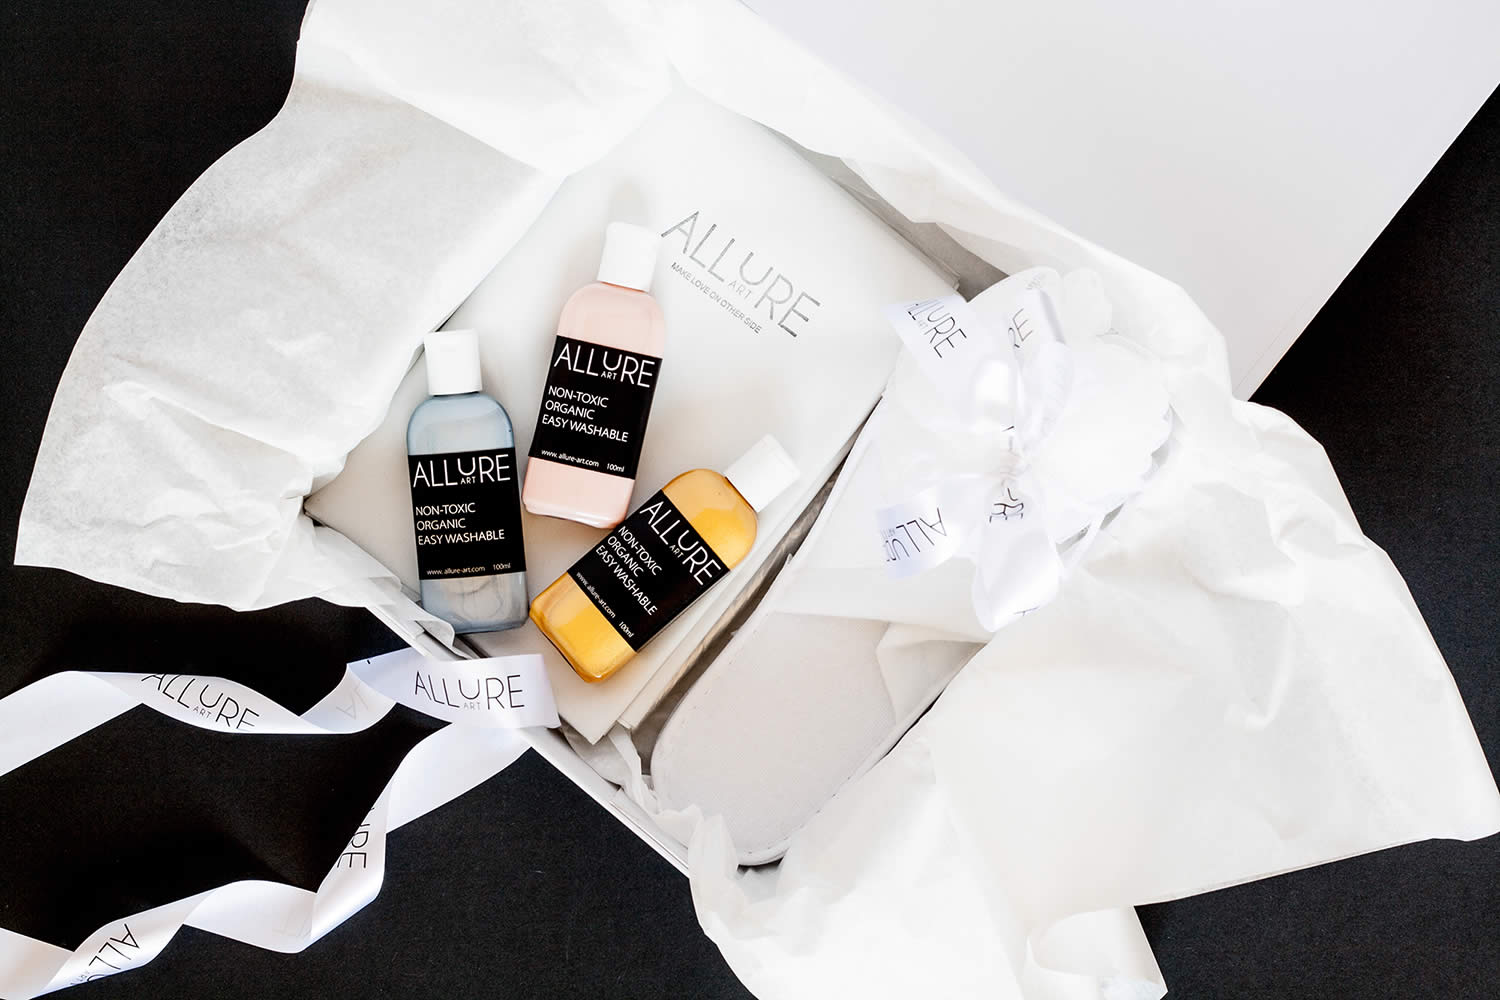 allure art kit